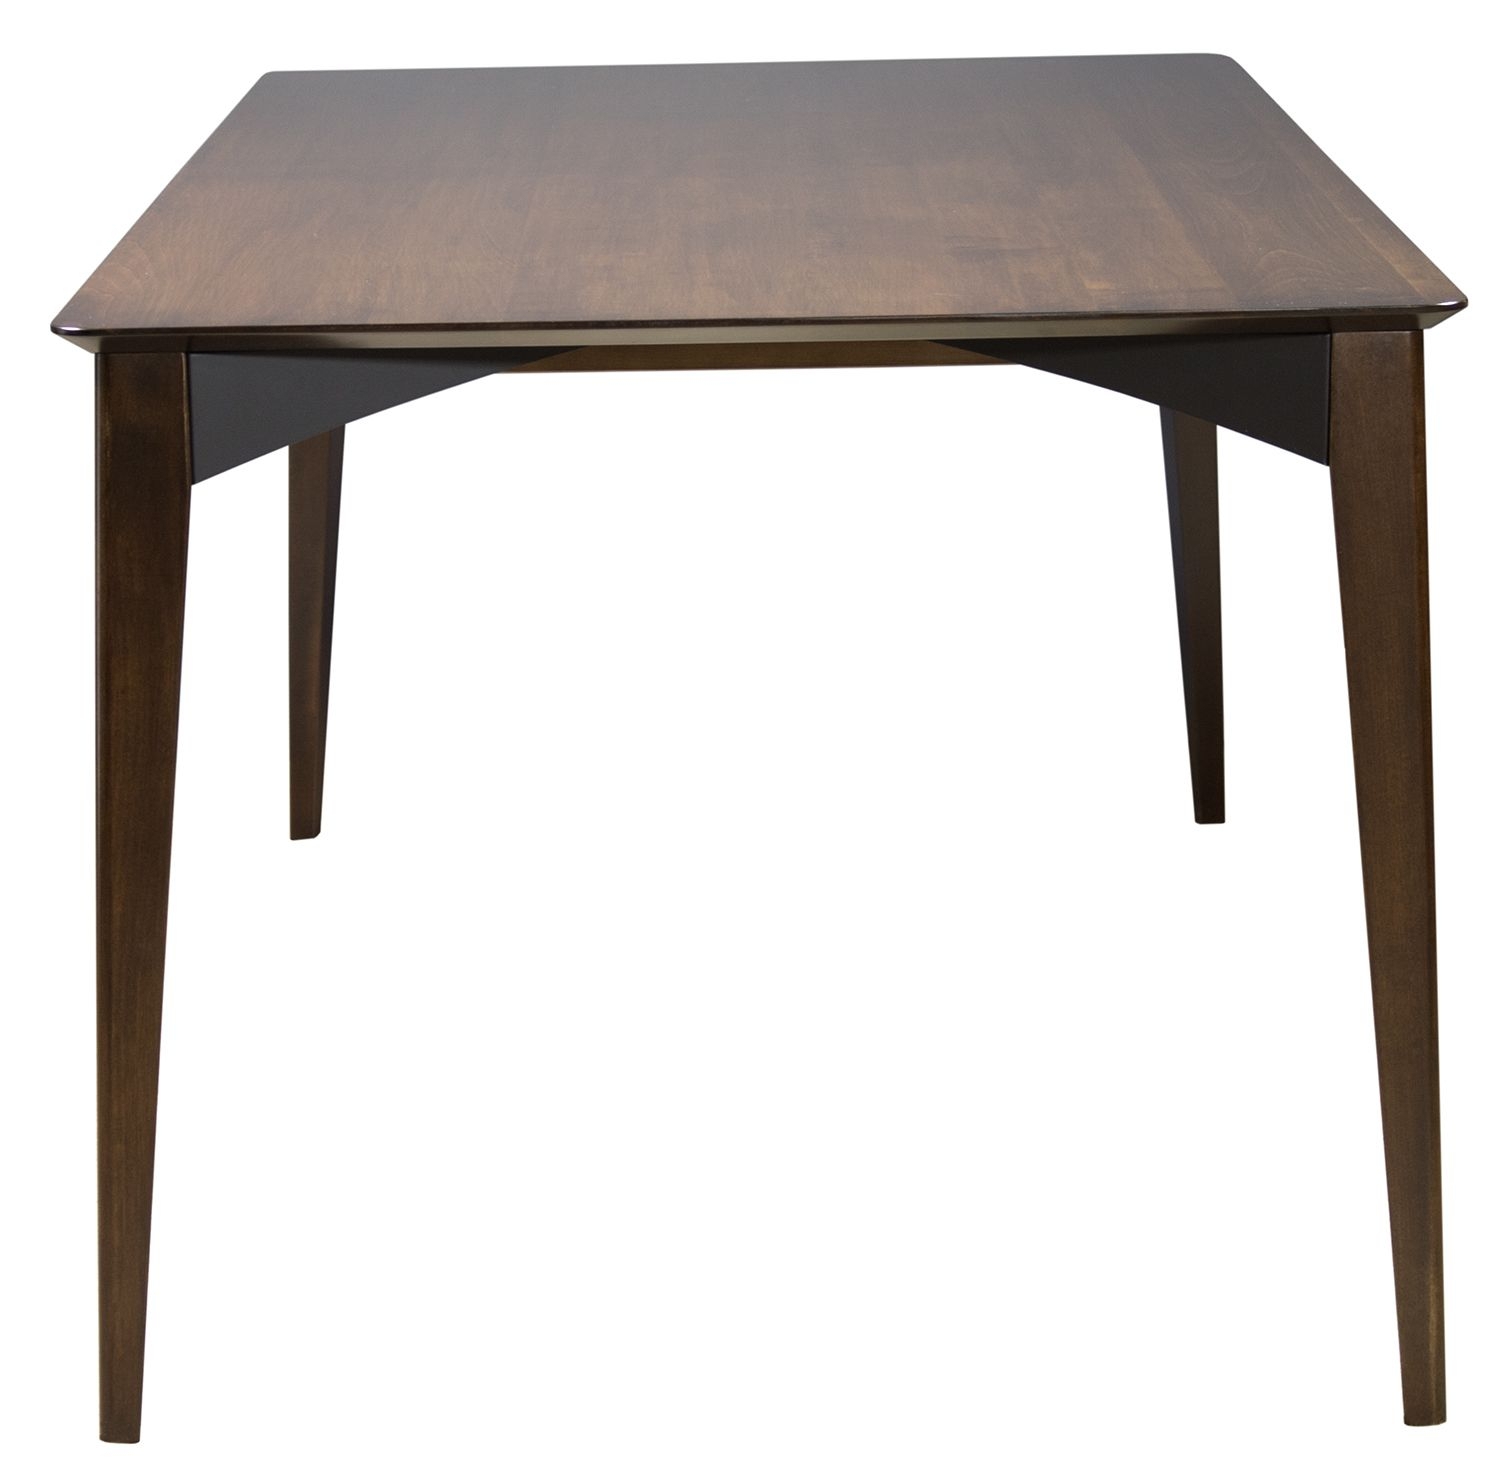 Remi Dining Table In Amaretto Finish From Saloom (View 10 of 30)